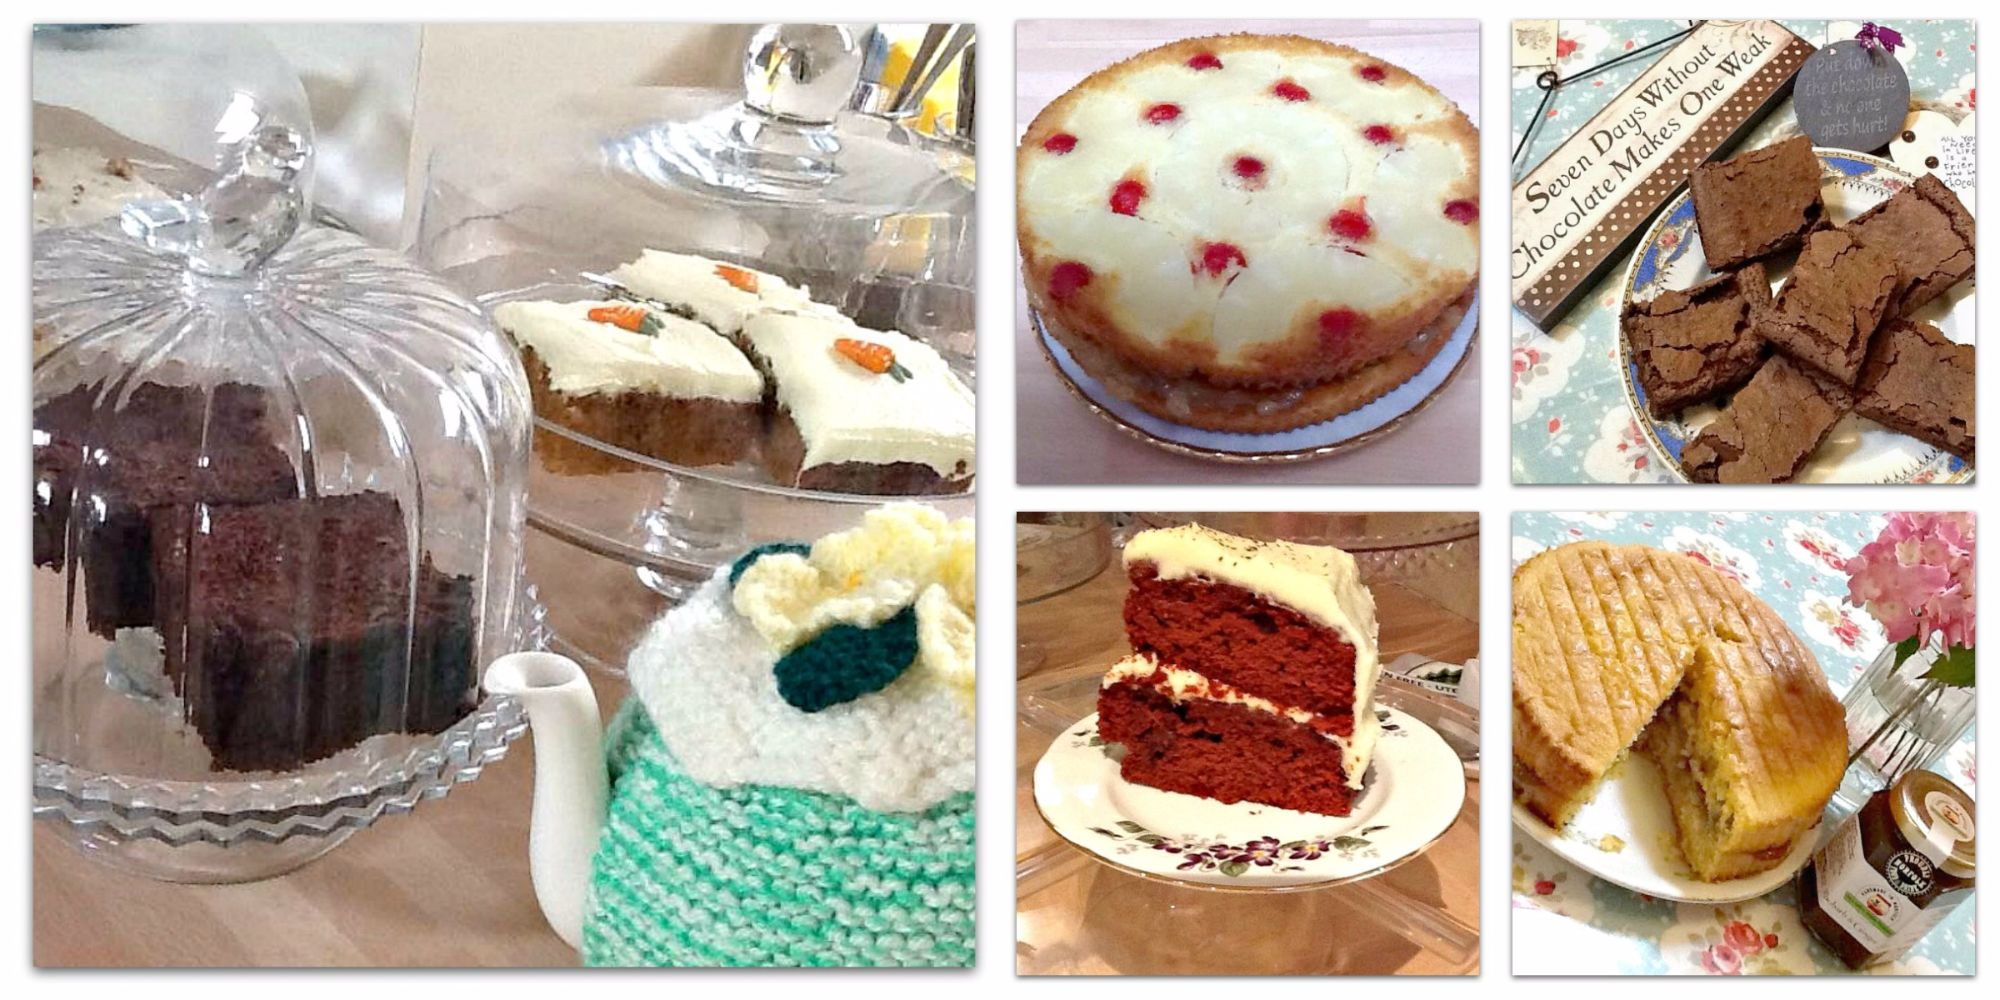 Homemade Cakes & Bakes available at Prima Rosa in Salhouse, Norwich, Norfolk